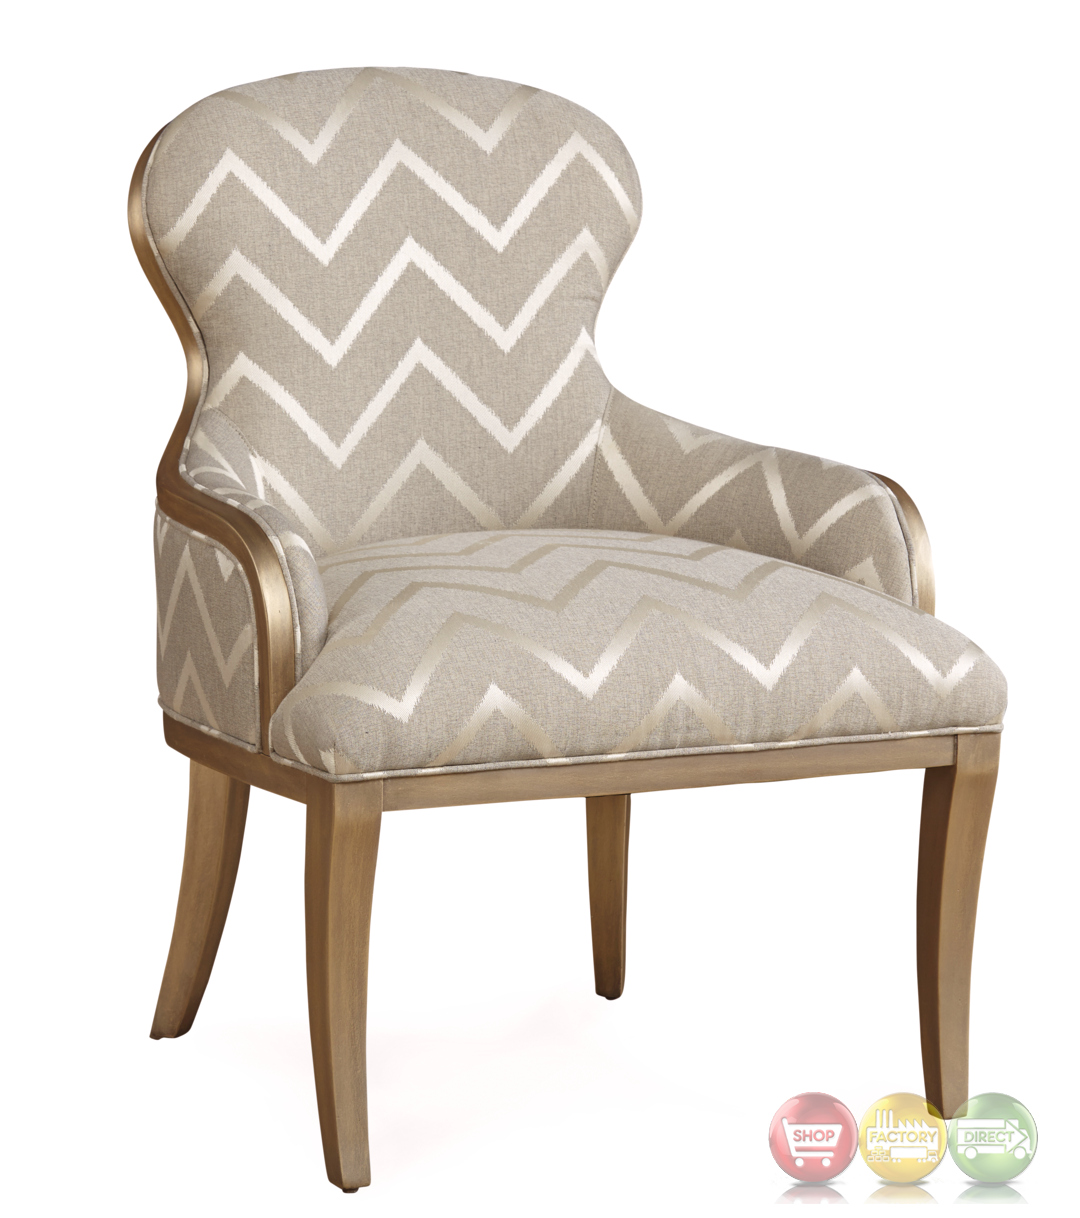 gray chevron chair colored office chairs the foundry french accent in grey and champagne